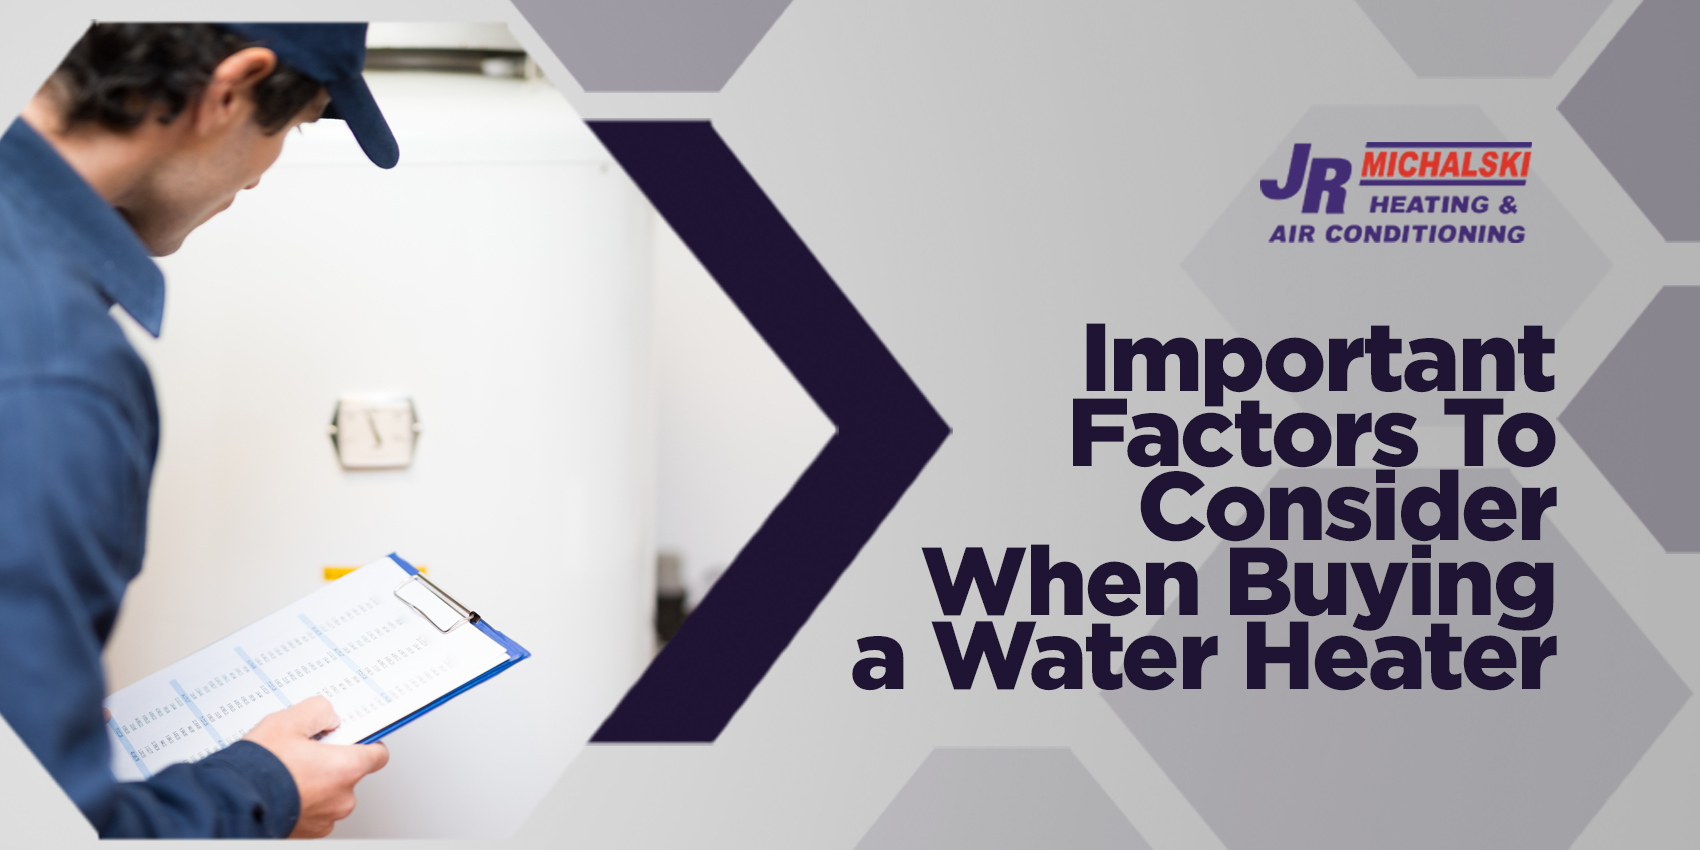 Important Factors To Consider When Buying a Water Heater